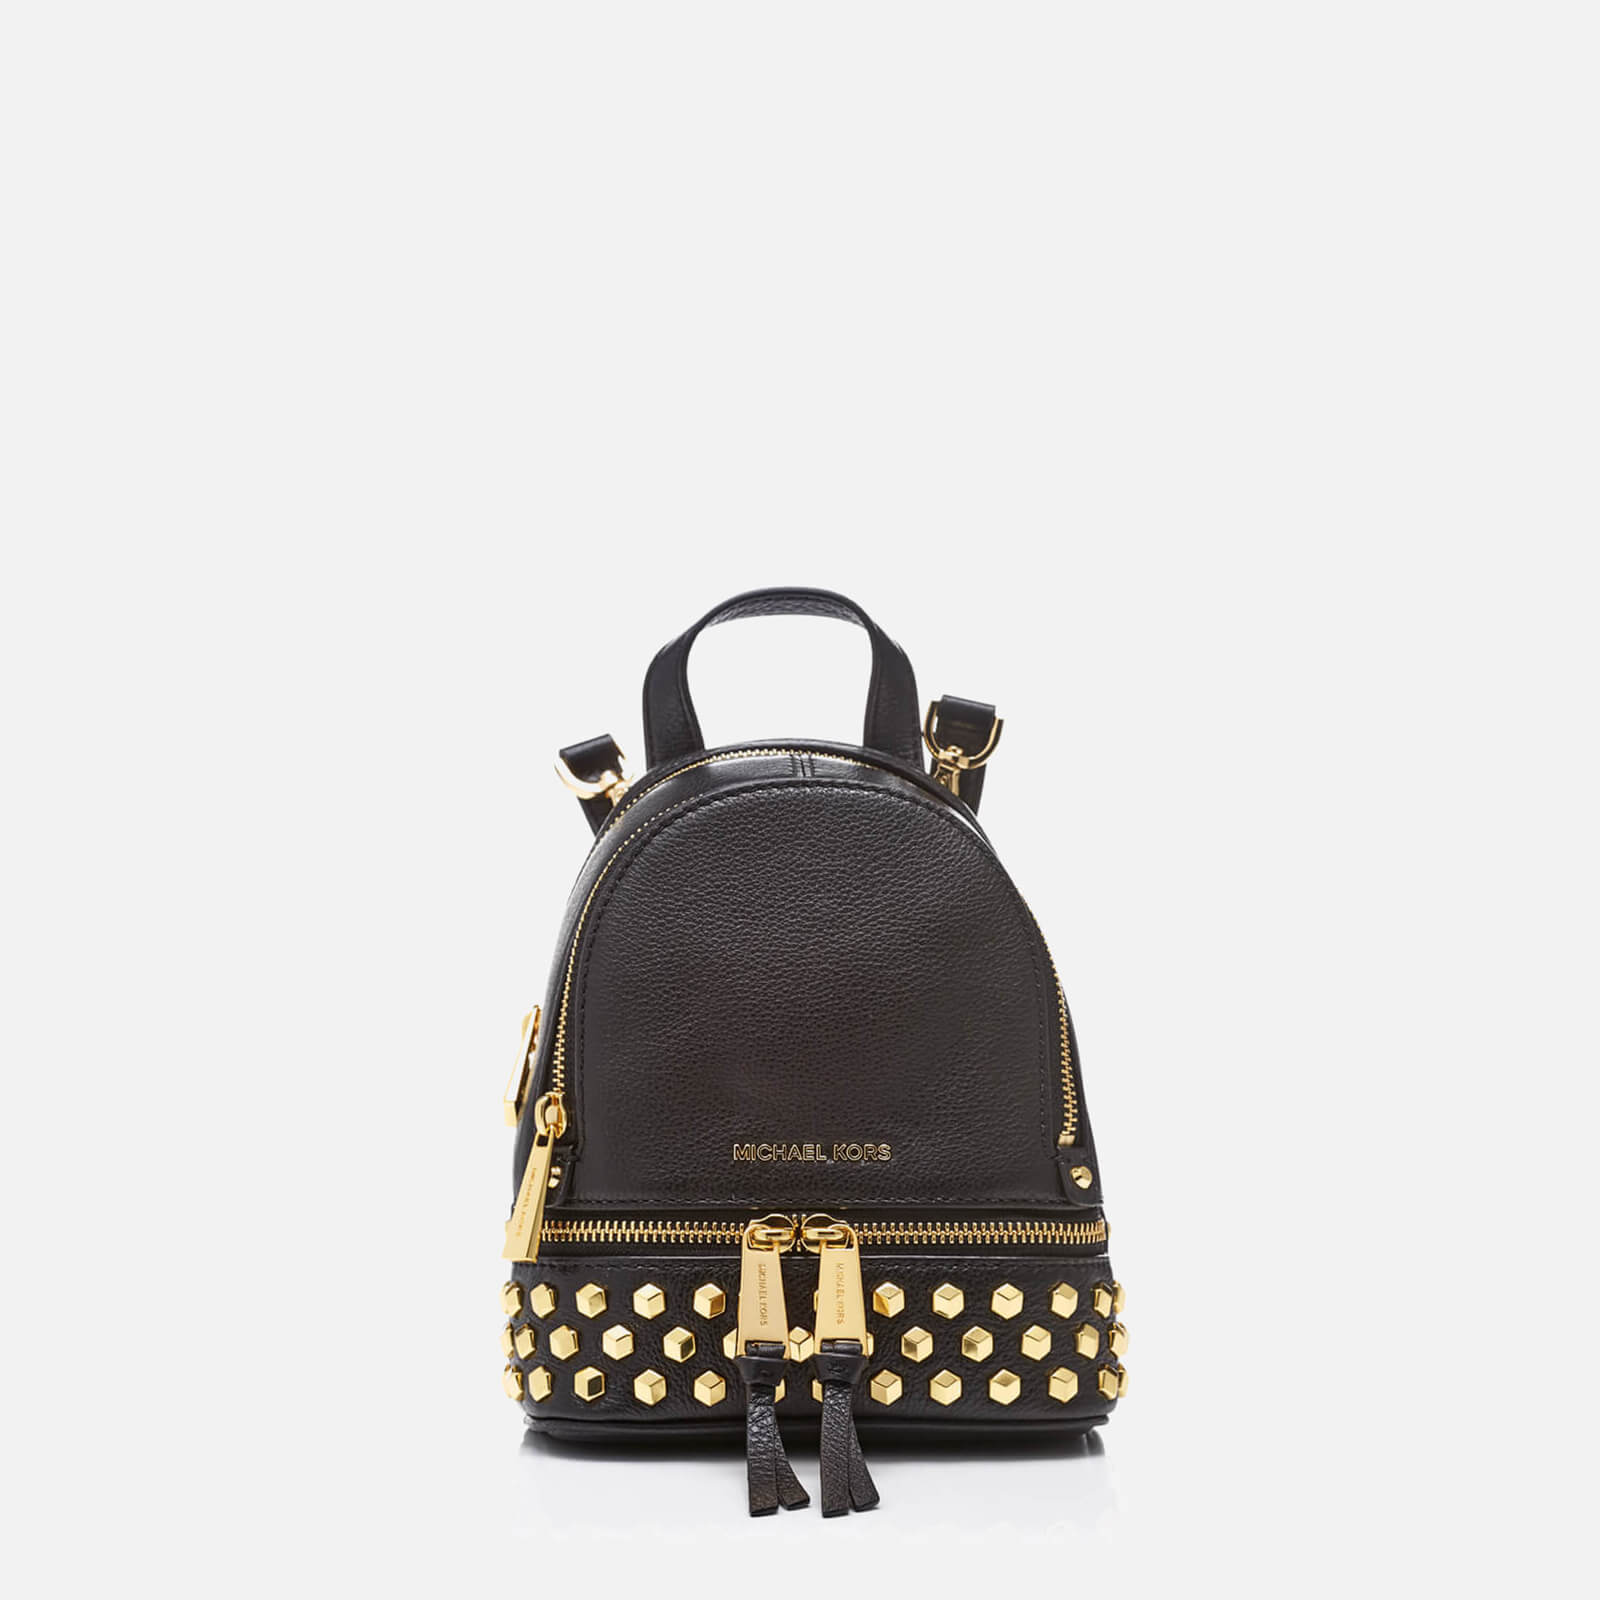 59817501a3fb MICHAEL MICHAEL KORS Women's Rhea Zip Studded XS Messenger Backpack - Black  - Free UK Delivery over £50